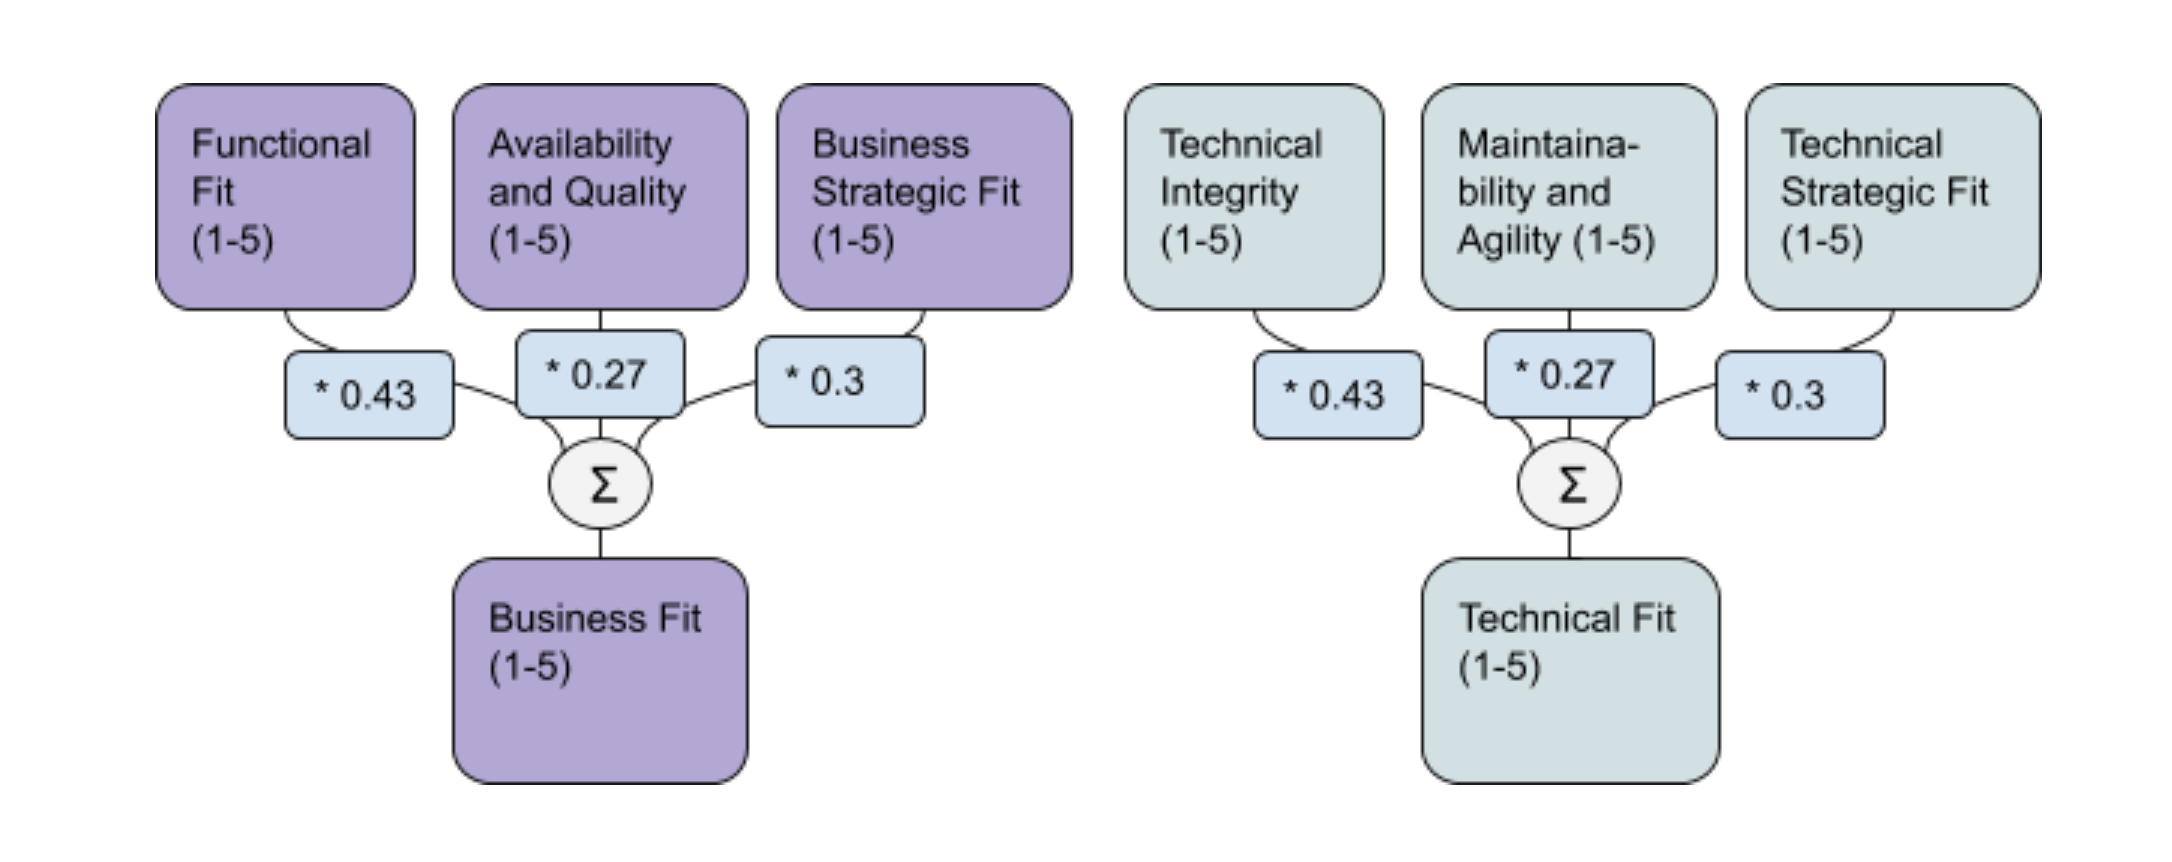 Ardoq business and technical fit calculation